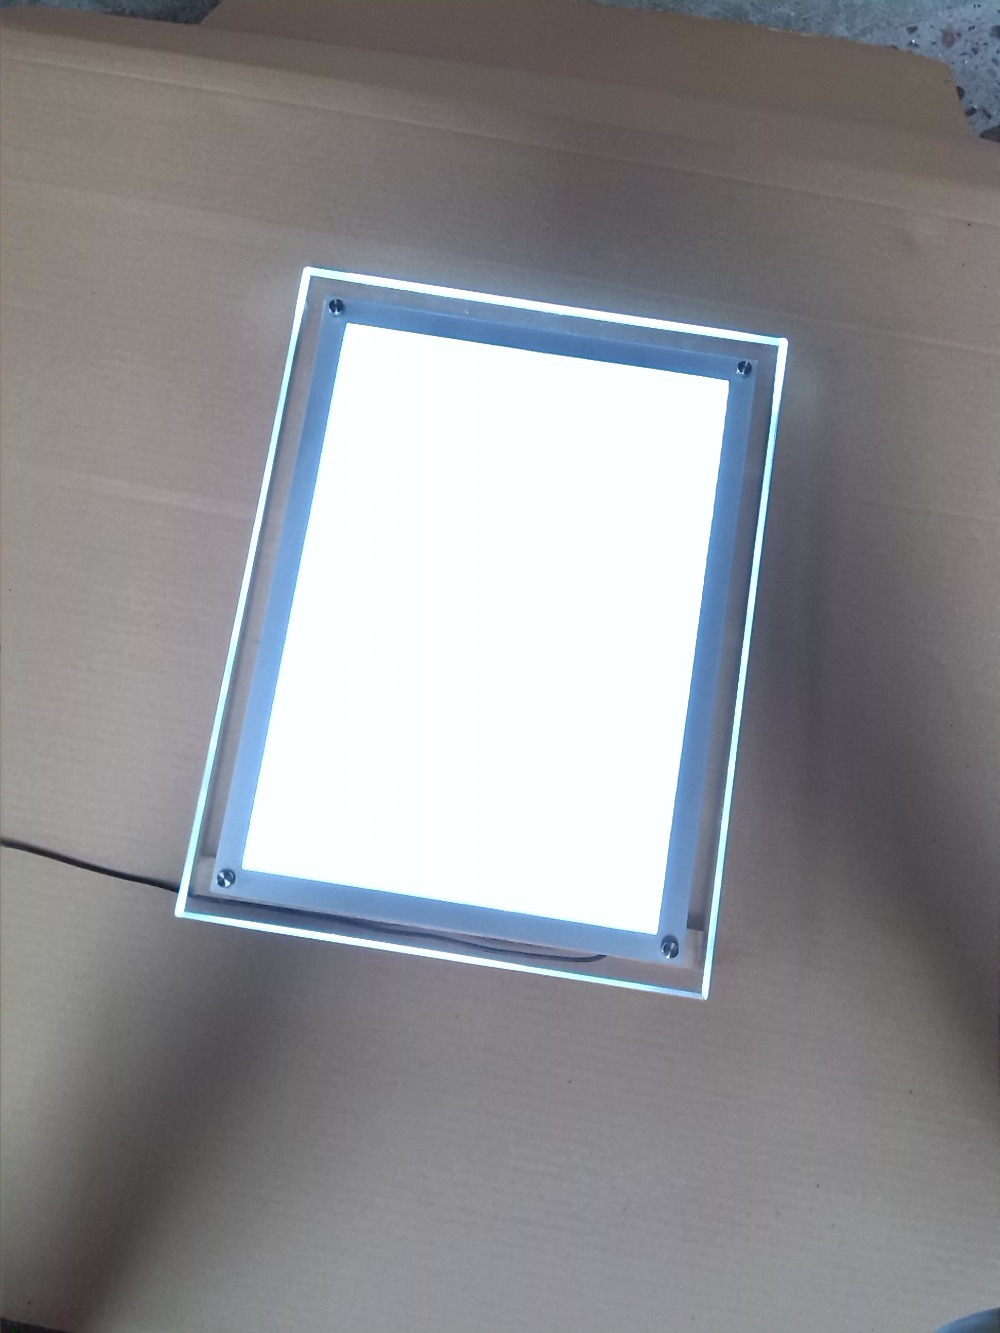 A3 SIZE CRYSTAL FRAME LED PRICE LIST MENU LIGHT BOX FREE STAND WITH ...